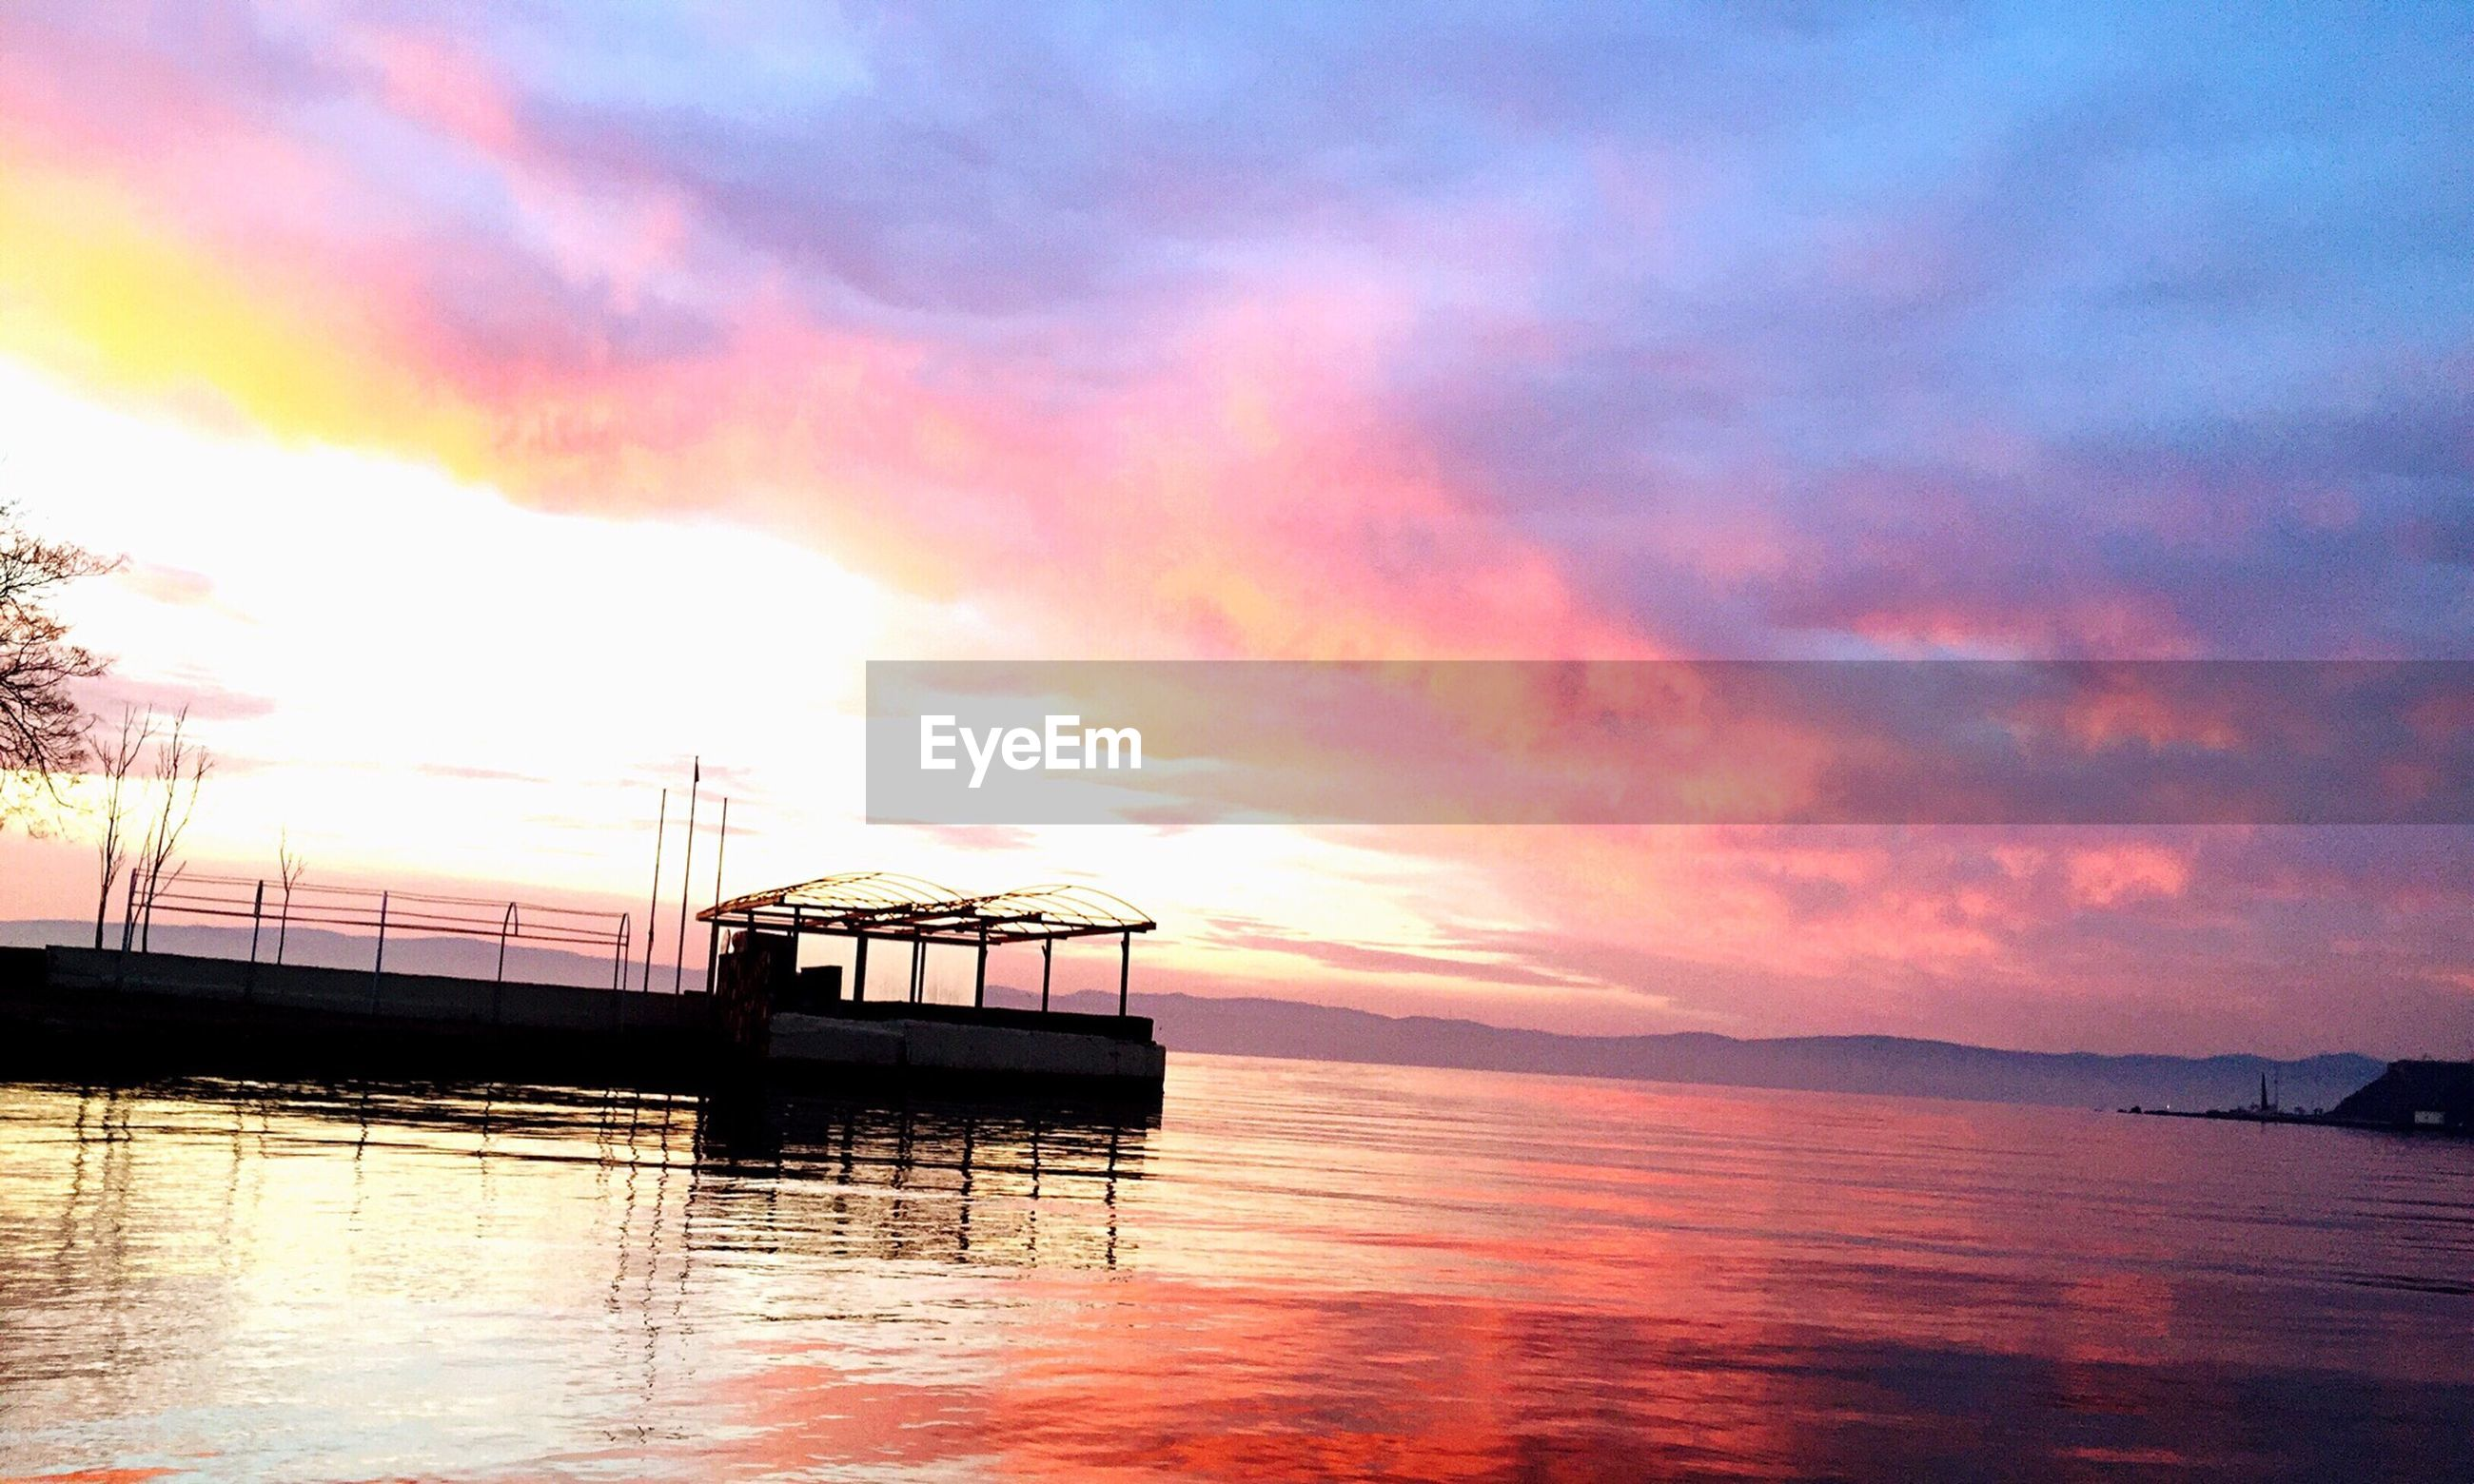 sunset, water, sky, tranquility, scenics, tranquil scene, cloud - sky, beauty in nature, sea, orange color, waterfront, idyllic, nature, reflection, cloudy, cloud, horizon over water, pier, dramatic sky, lake